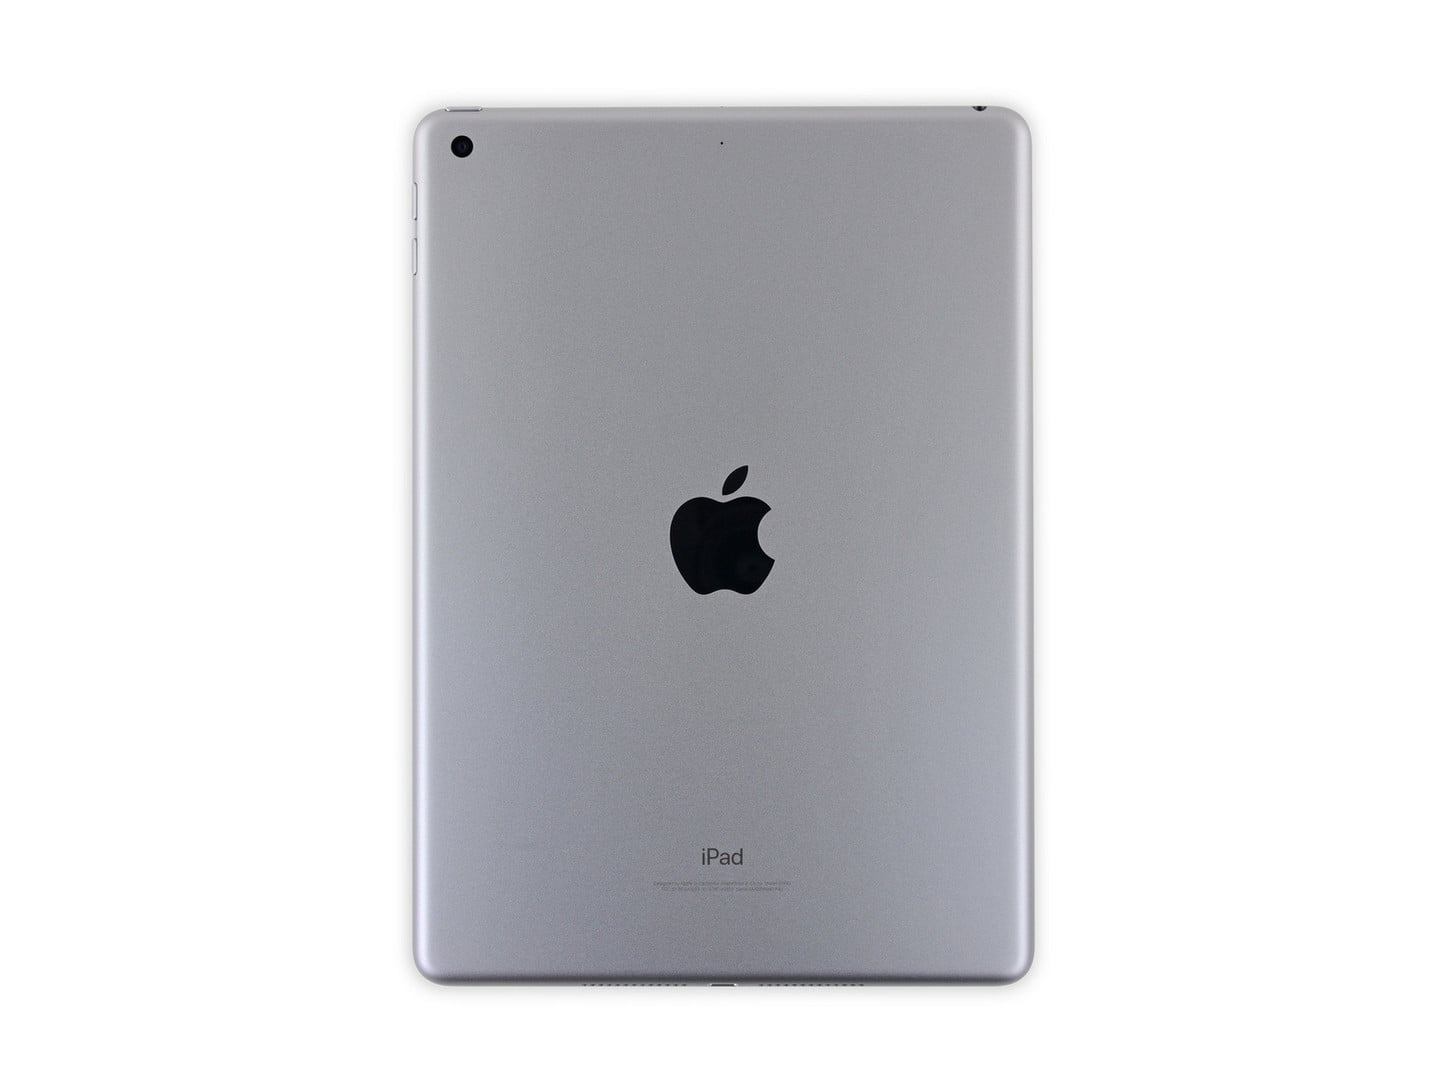 Sixth-Generation iPad Teardown Details 'Repair Nightmare' for Education-Focused Tablet